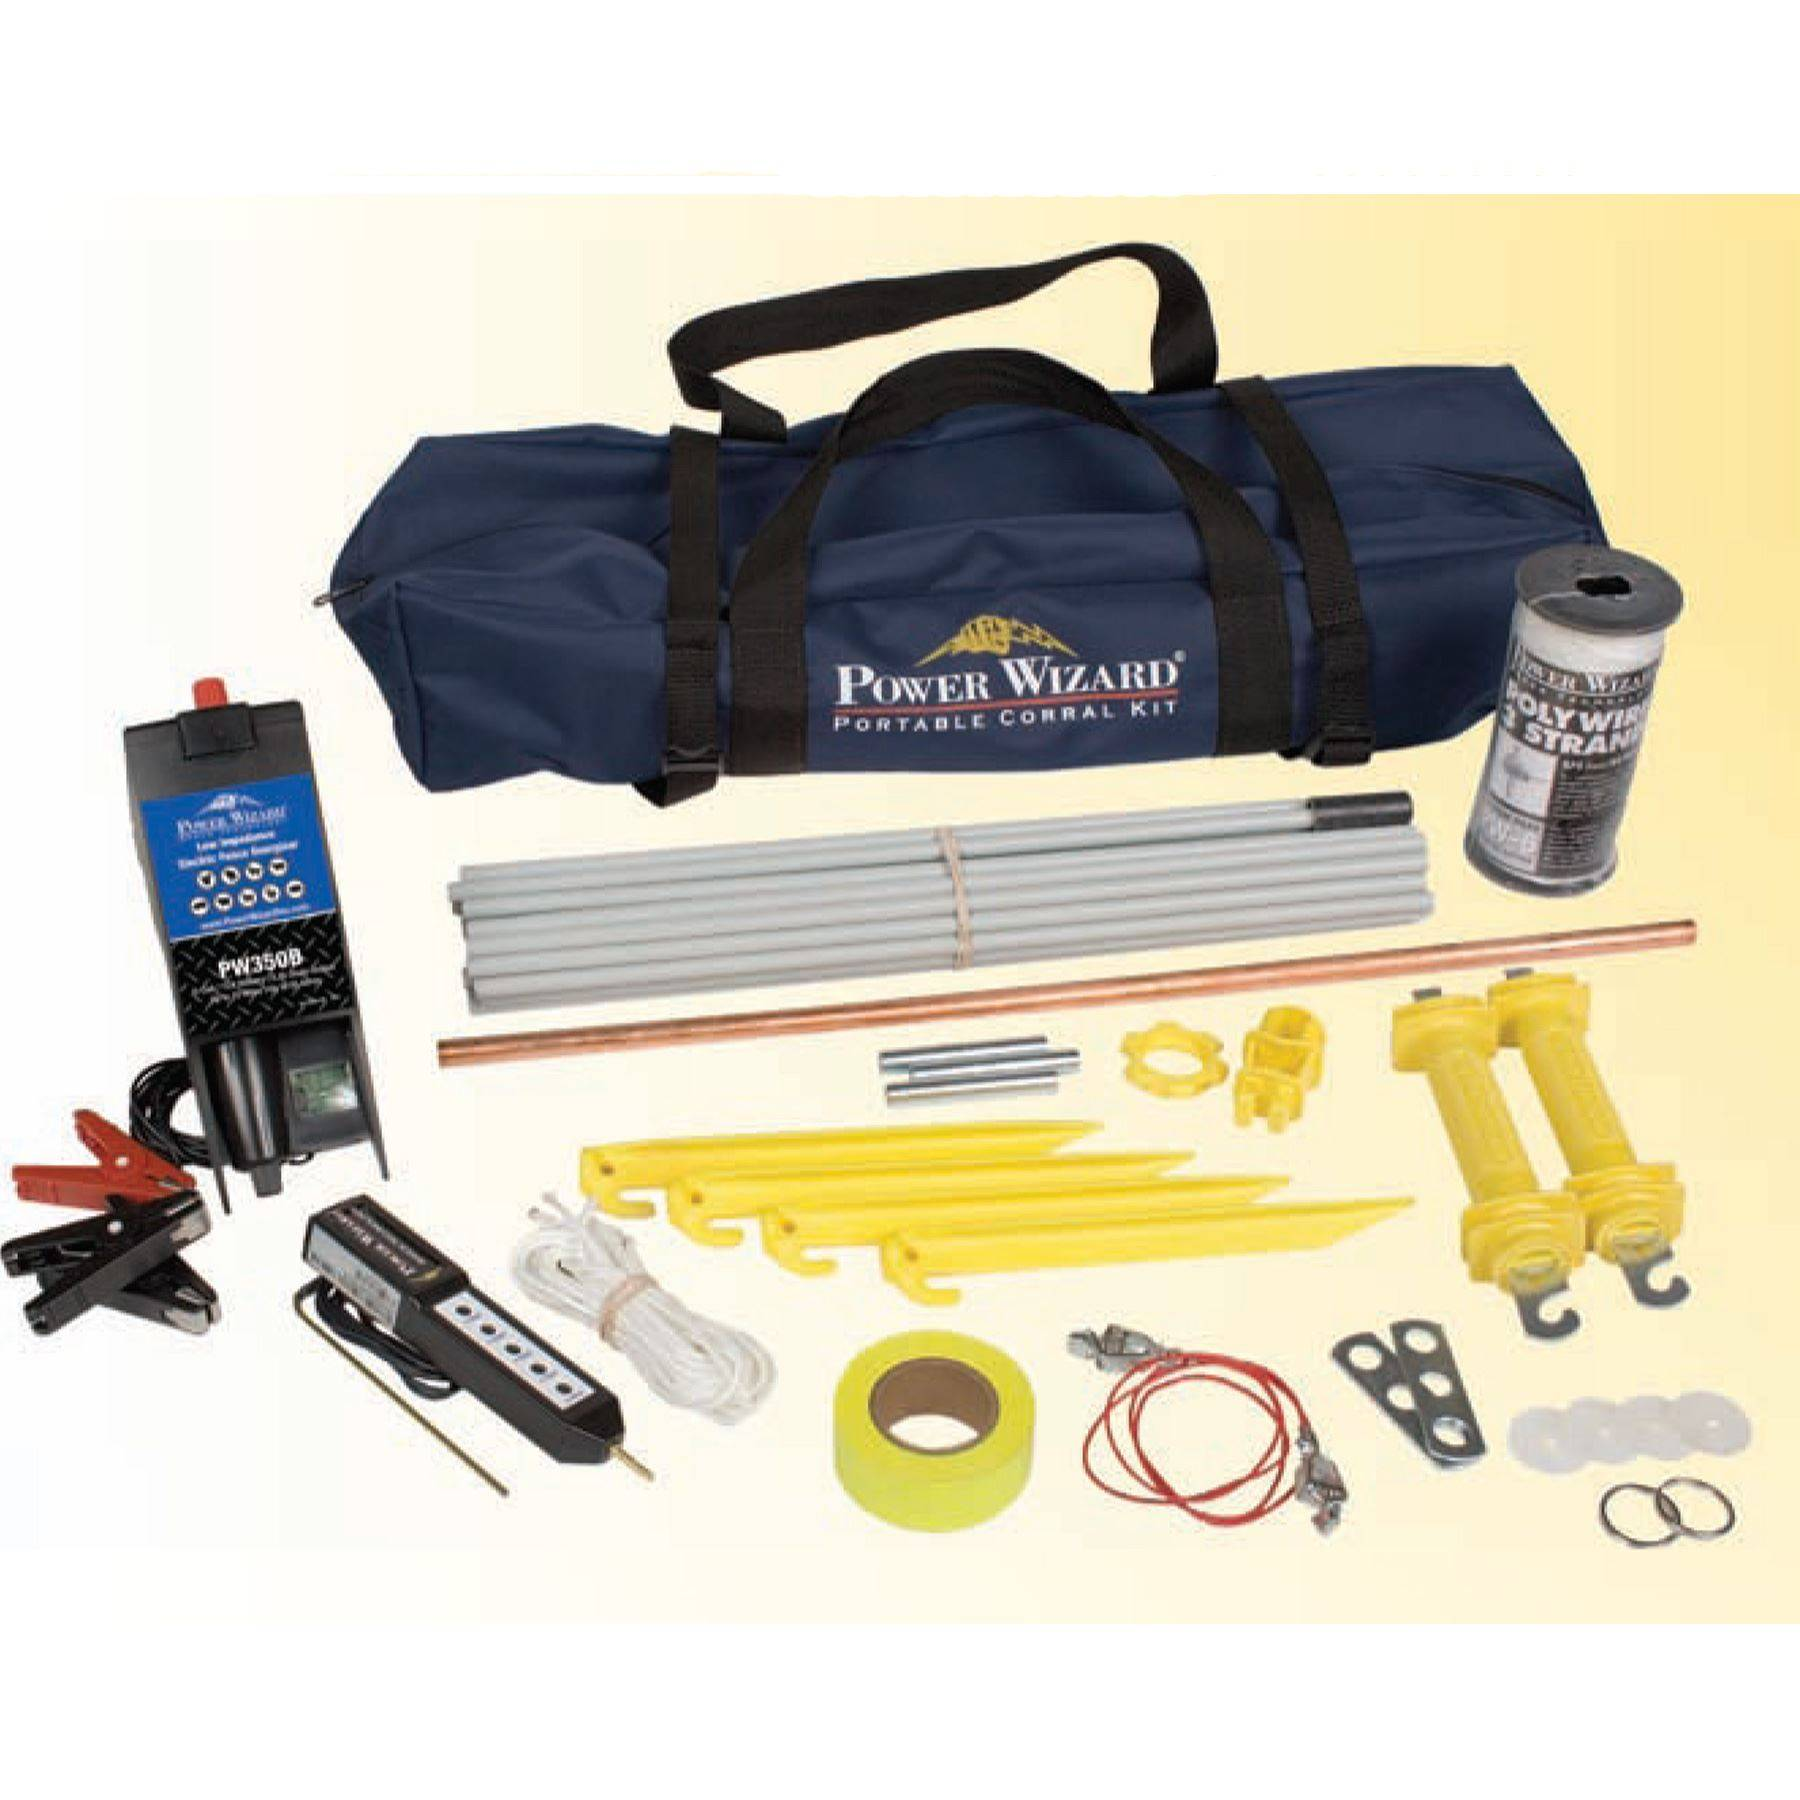 Power Wizard Portable Corral Kit